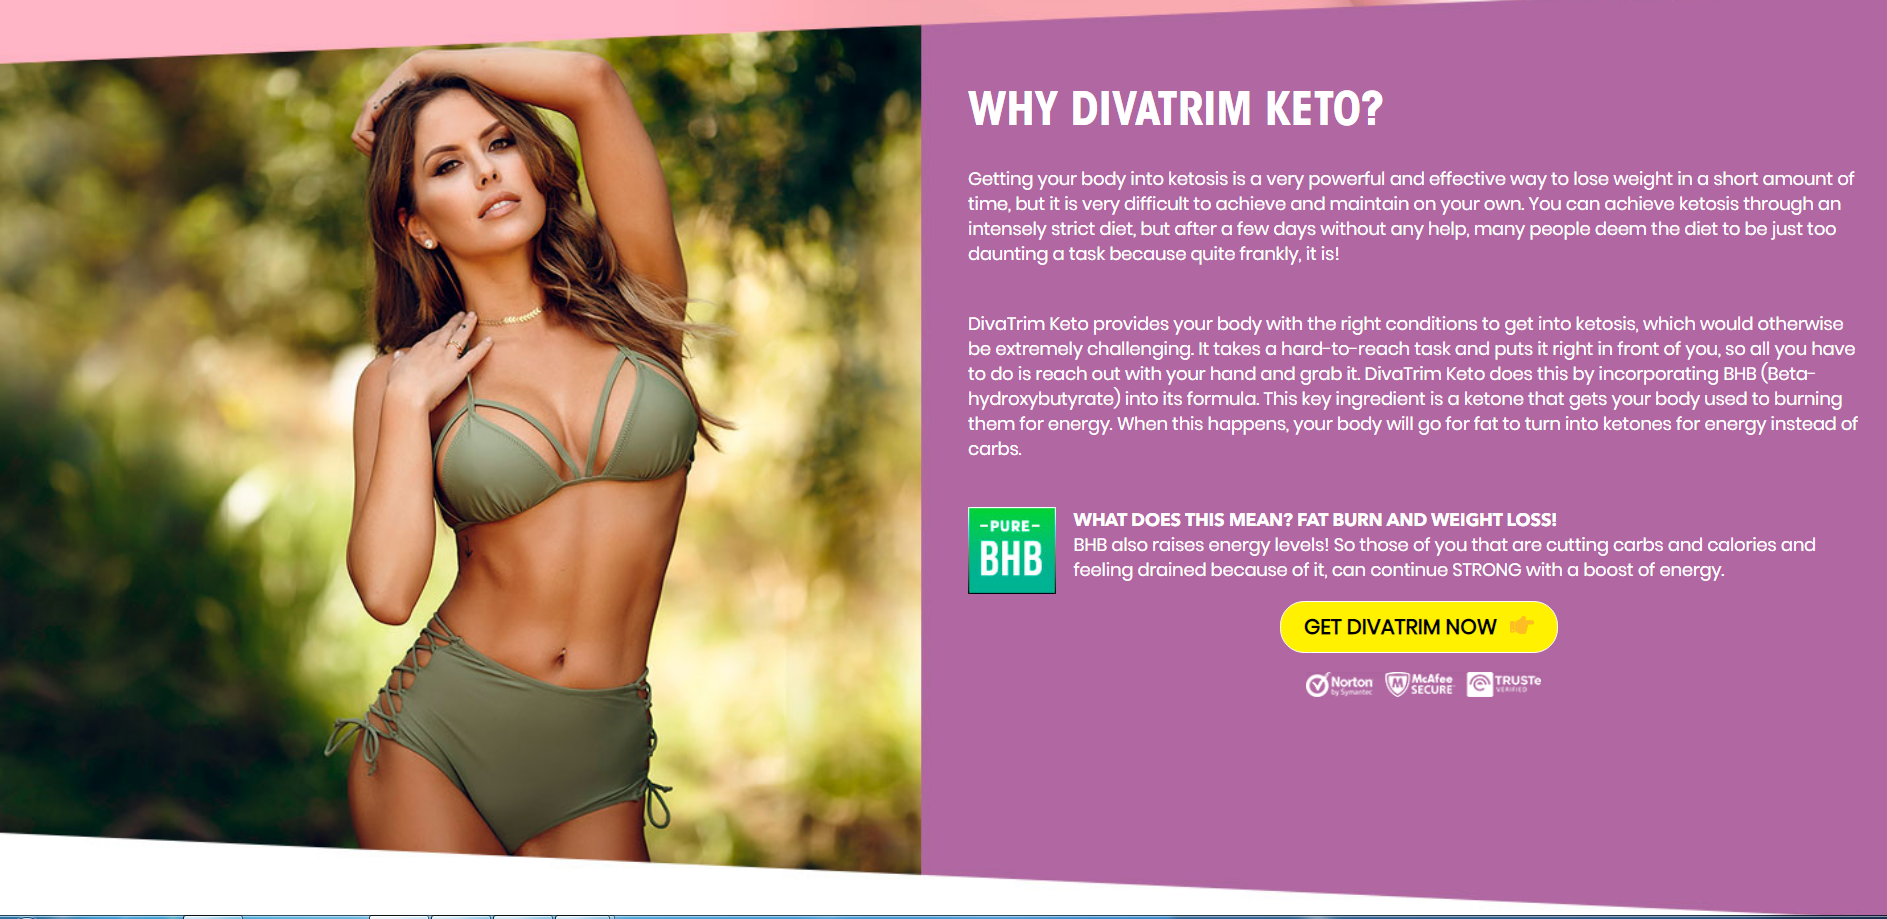 Divatrim Keto ™ - Reviews: The Truth About Divatrim Weight Loss Pills!